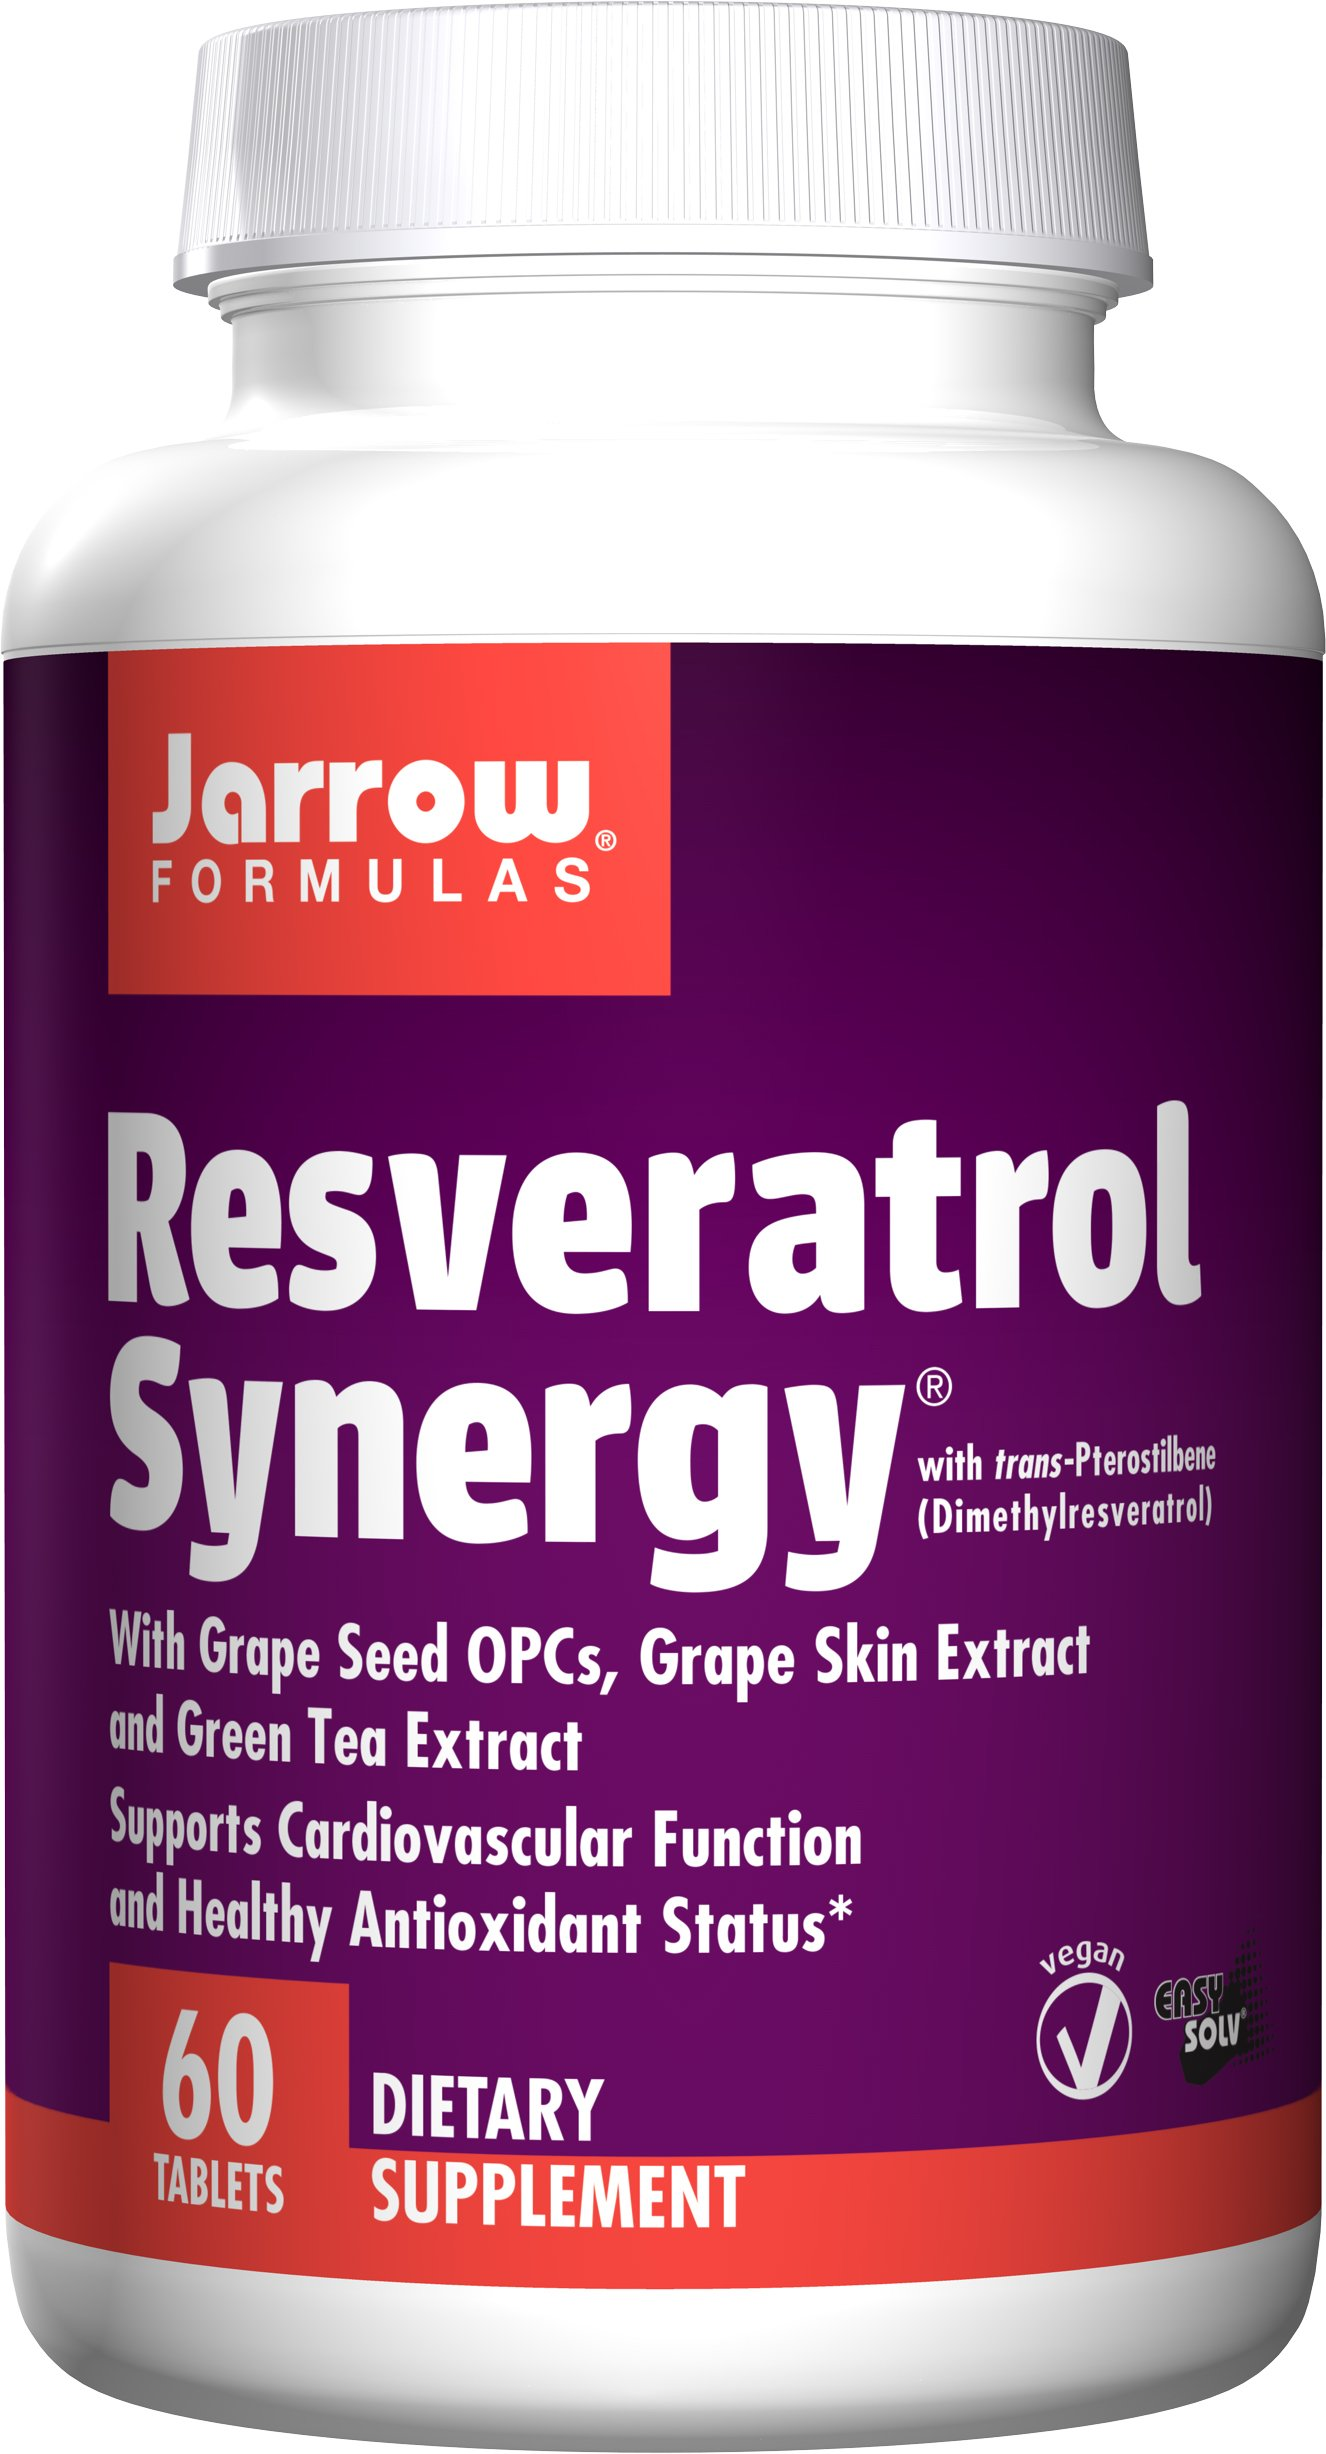 Jarrow Formulas Resveratrol Synergy, 60 Tablets by Jarrow Formulas